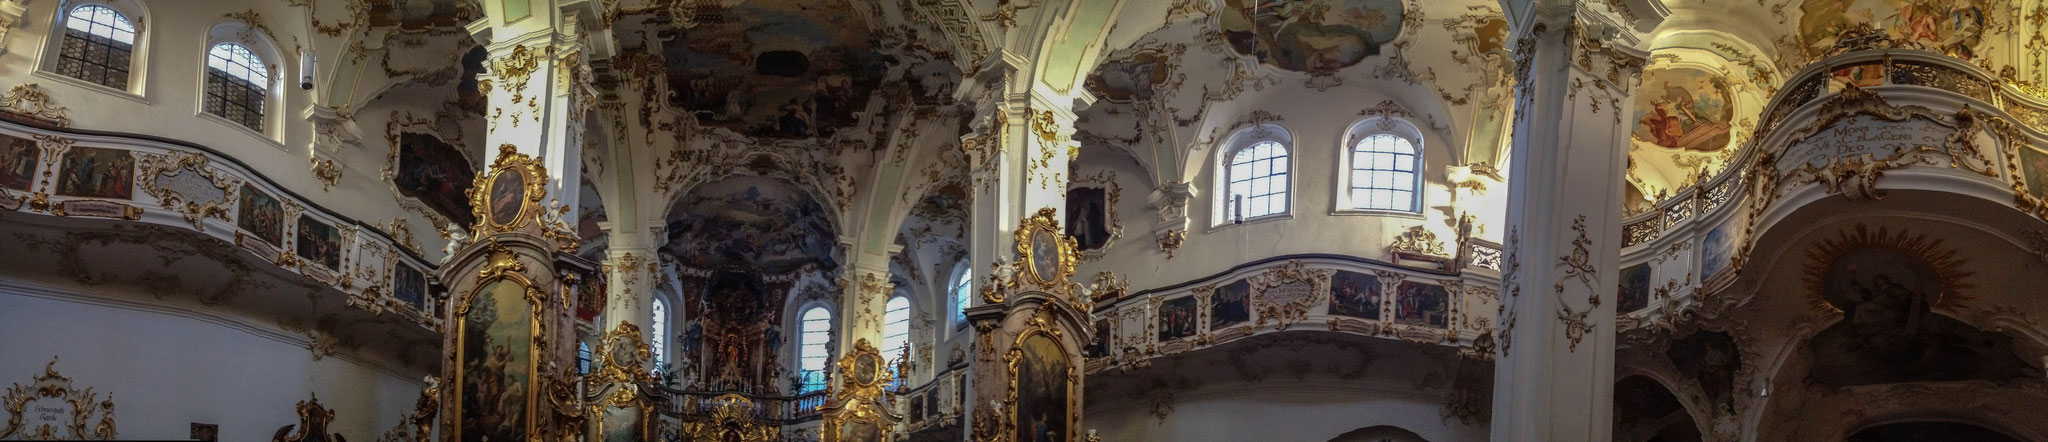 Andechs Abbey, Germany (2013)